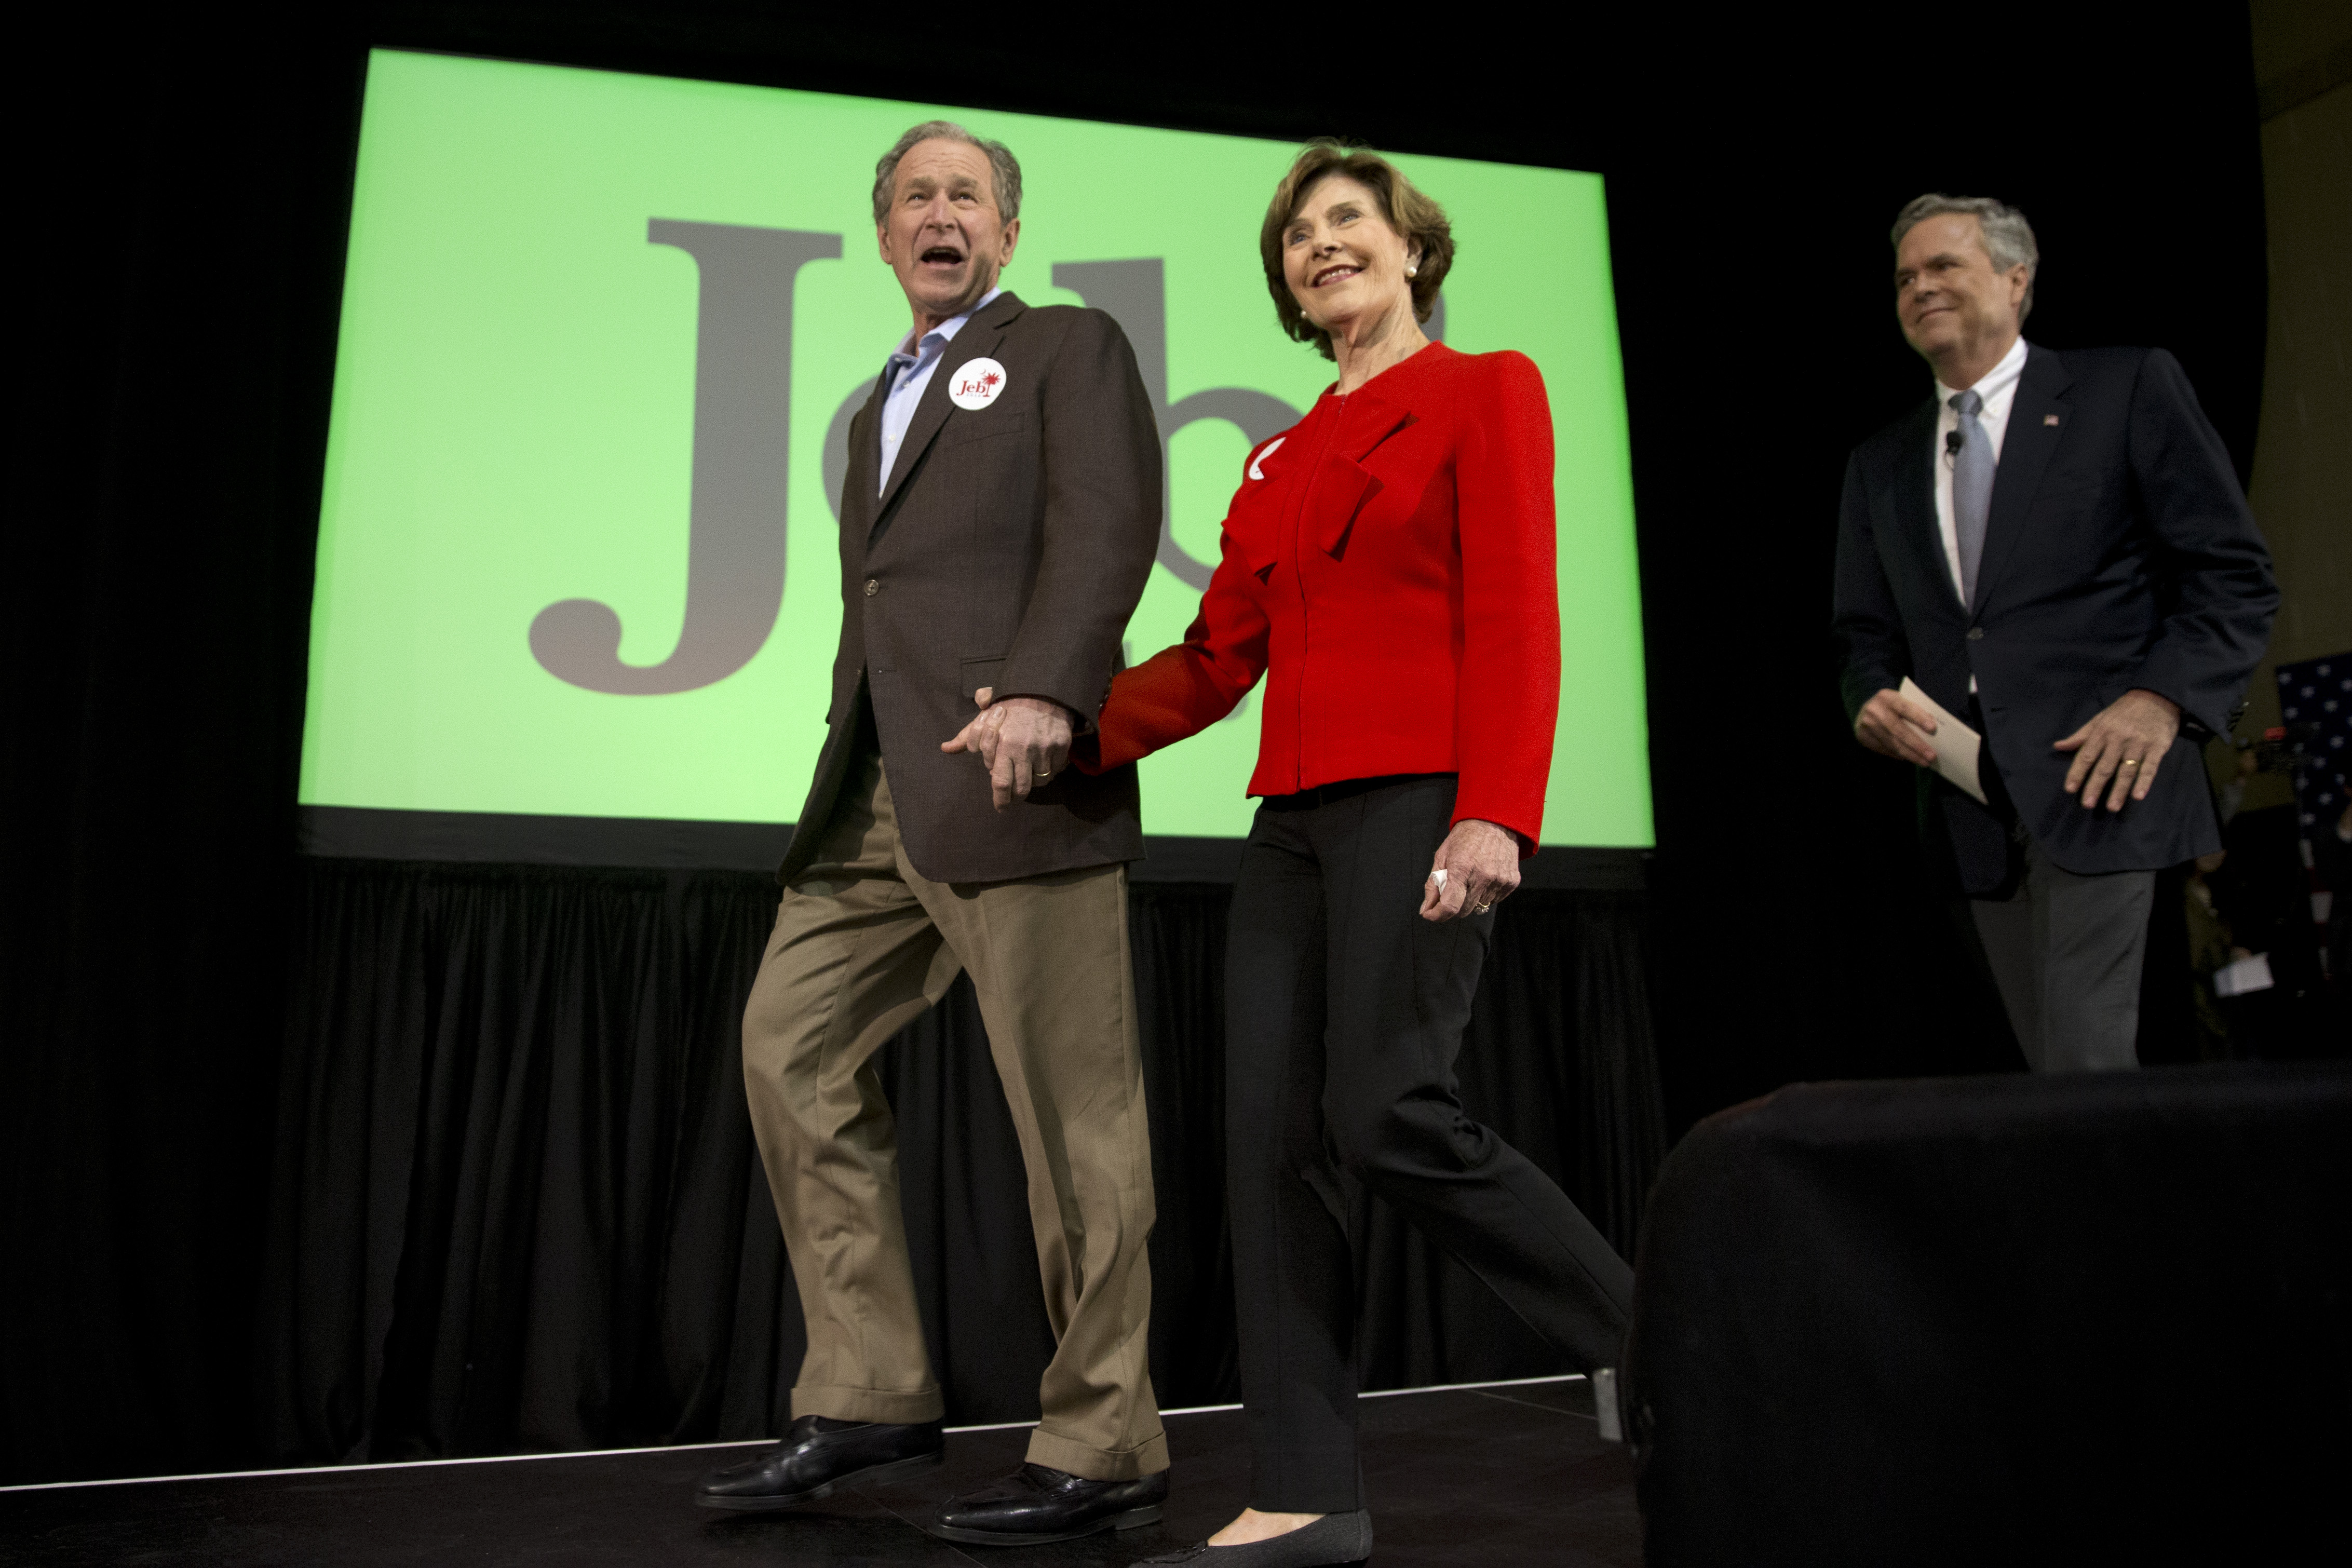 Republican presidential candidate and former Florida Gov. Jeb Bush, right, accompanied by his brother former President George W. Bush, left, and George's wife Laura Bush, takes the stage during a campaign stop Monday, Feb. 15, 2016, in North Charleston, S.C. (AP Photo/Matt Rourke)